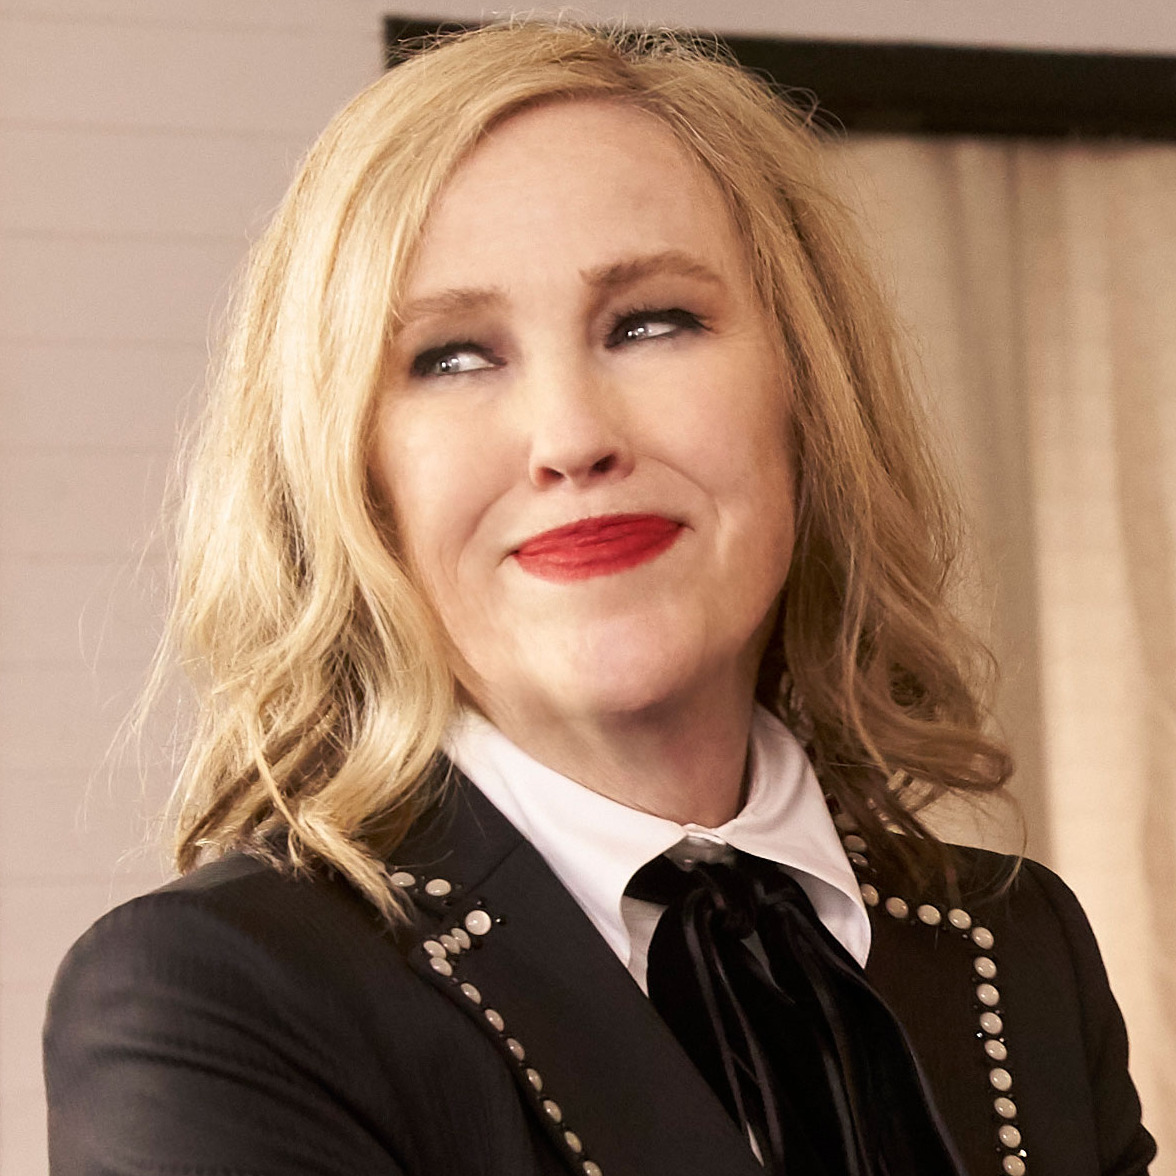 Schitt's Creek: Everything We Know About Moira Rose's Career